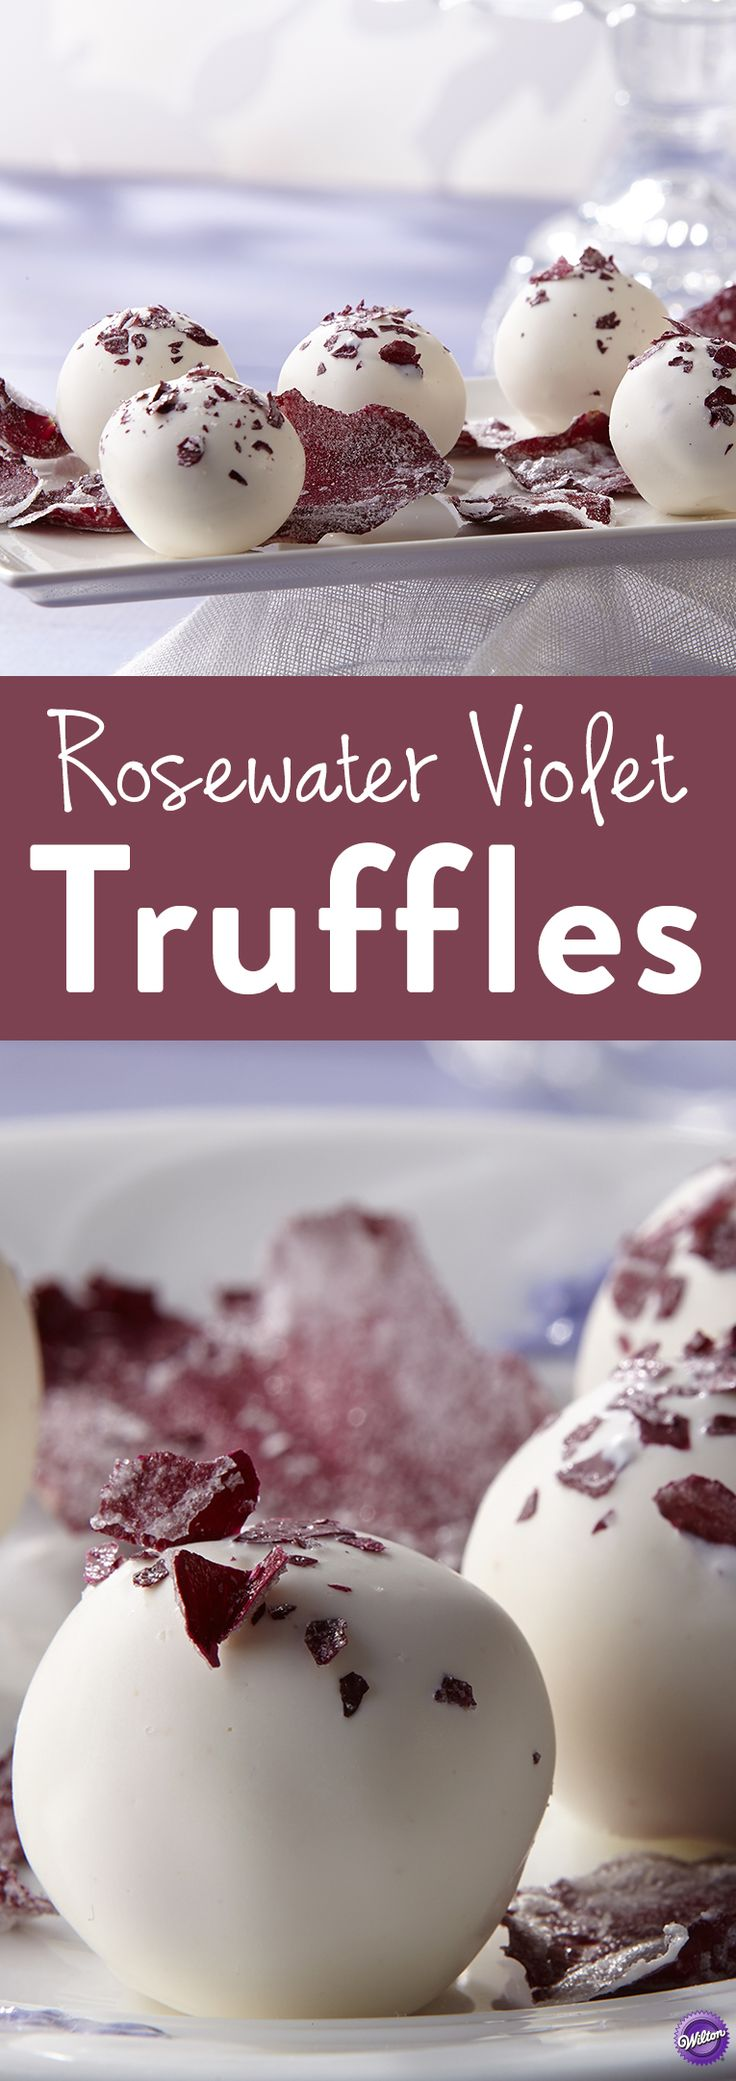 Rosewater Violet Truffles - These floral infused truffles will melt even the coldest of hearts with their combination of white chocolate, rosewater and violet. Great for wedding shower desserts or as a gift to your party host.